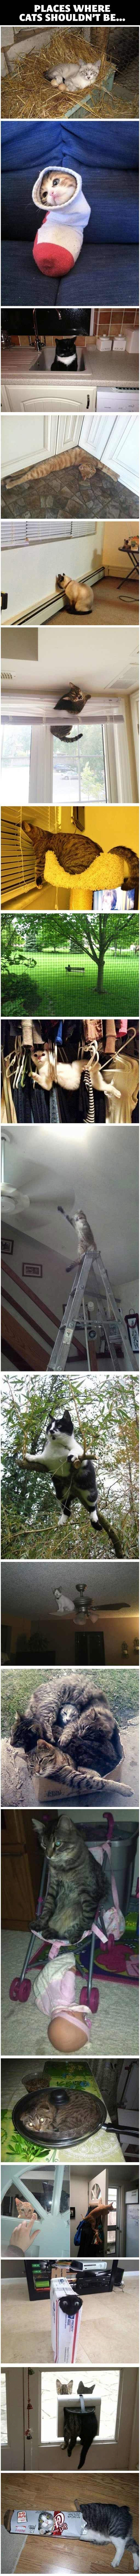 Cats In Places They Shouldn't Be.... -   Misc